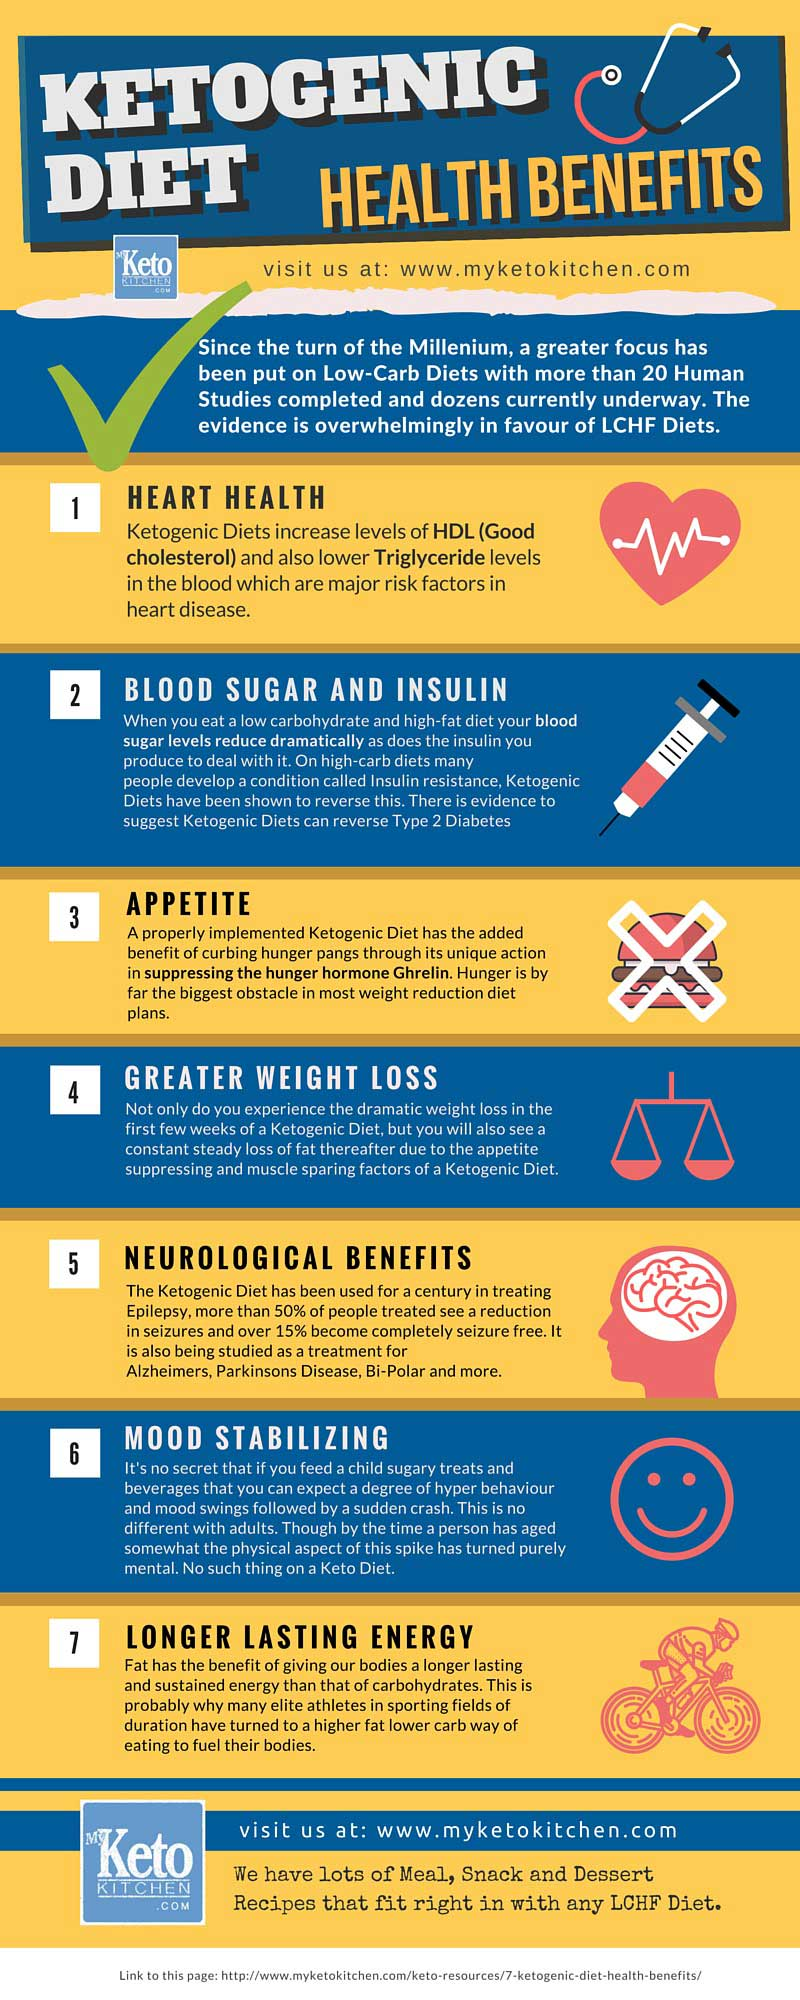 Ketogenic-Diet-Health-Benefits-infographic-my-keto-kitchen.jpg?resize=800%2C2000&ssl=1